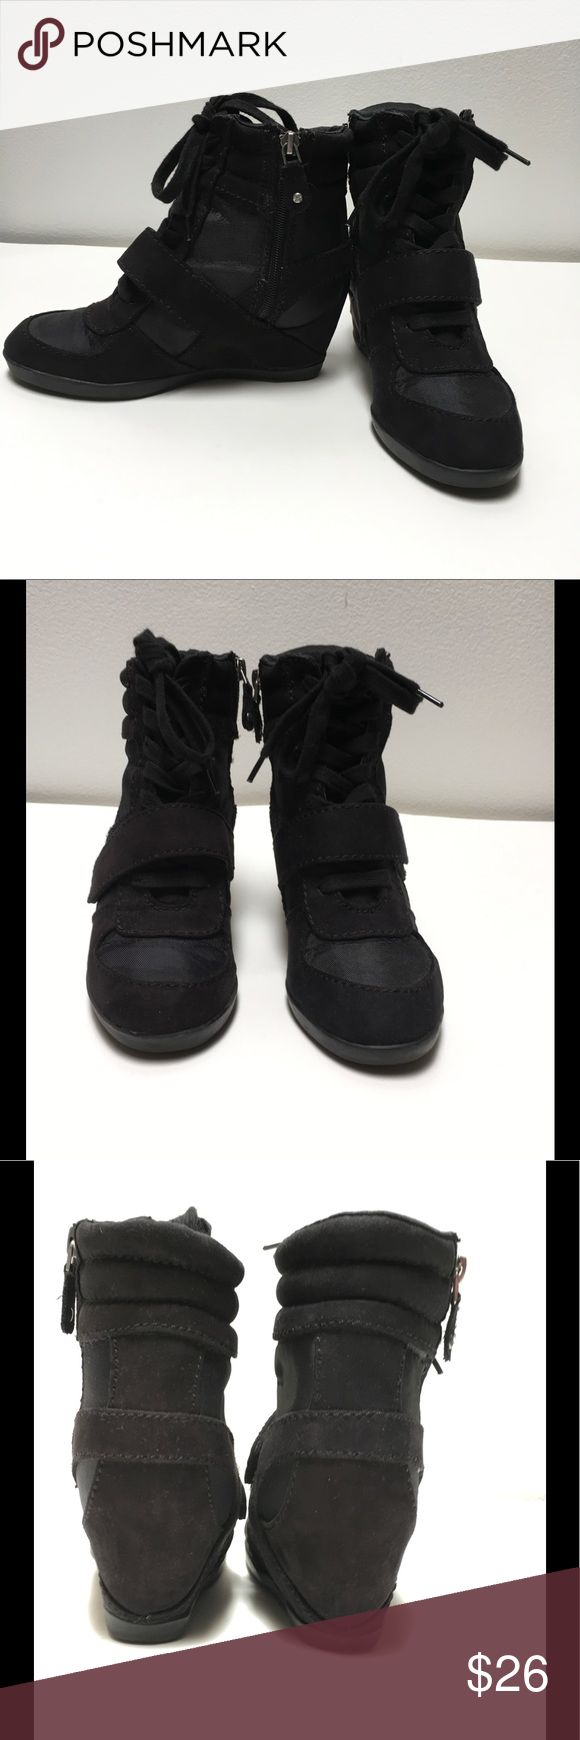 Simply Vera by Vera Wang Black Wedge Sneaker Simply Vera by Vera Wang Black Wedge Sneaker with padded tongue and collar cushioning. Also includes velcro strap  Heel: 3 in wedge No box  Only used a few times Simply Vera Vera Wang Shoes Wedges